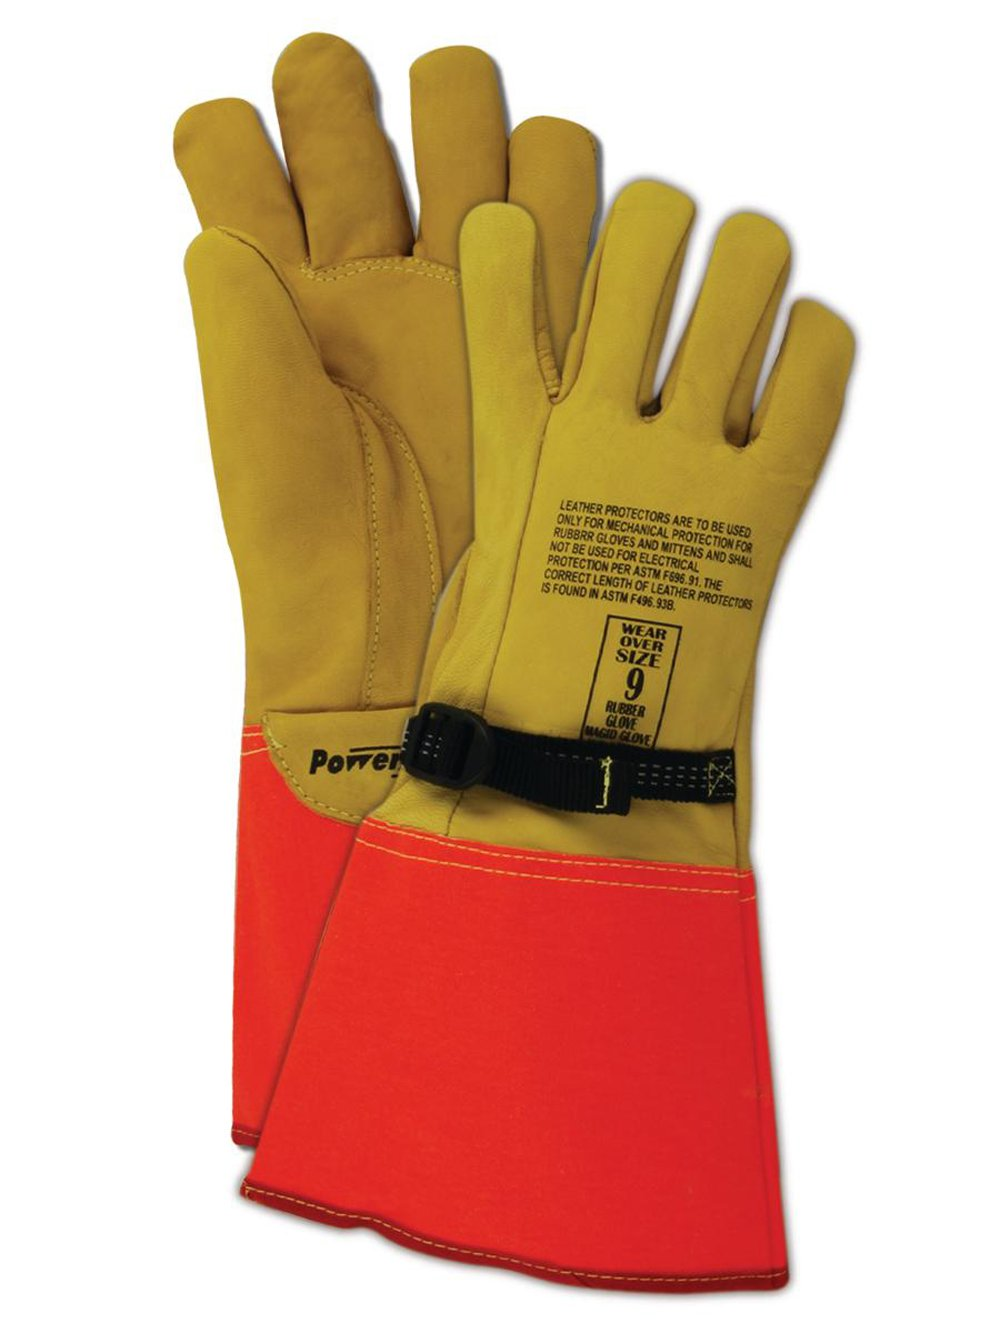 Gauntlet cuff leather work gloves - Magid Powermaster 606075ion Leather Glove For Use With High Voltage Gauntlet Cuff 14 Length Size 8 One Pair Work Gloves Amazon Com Industrial